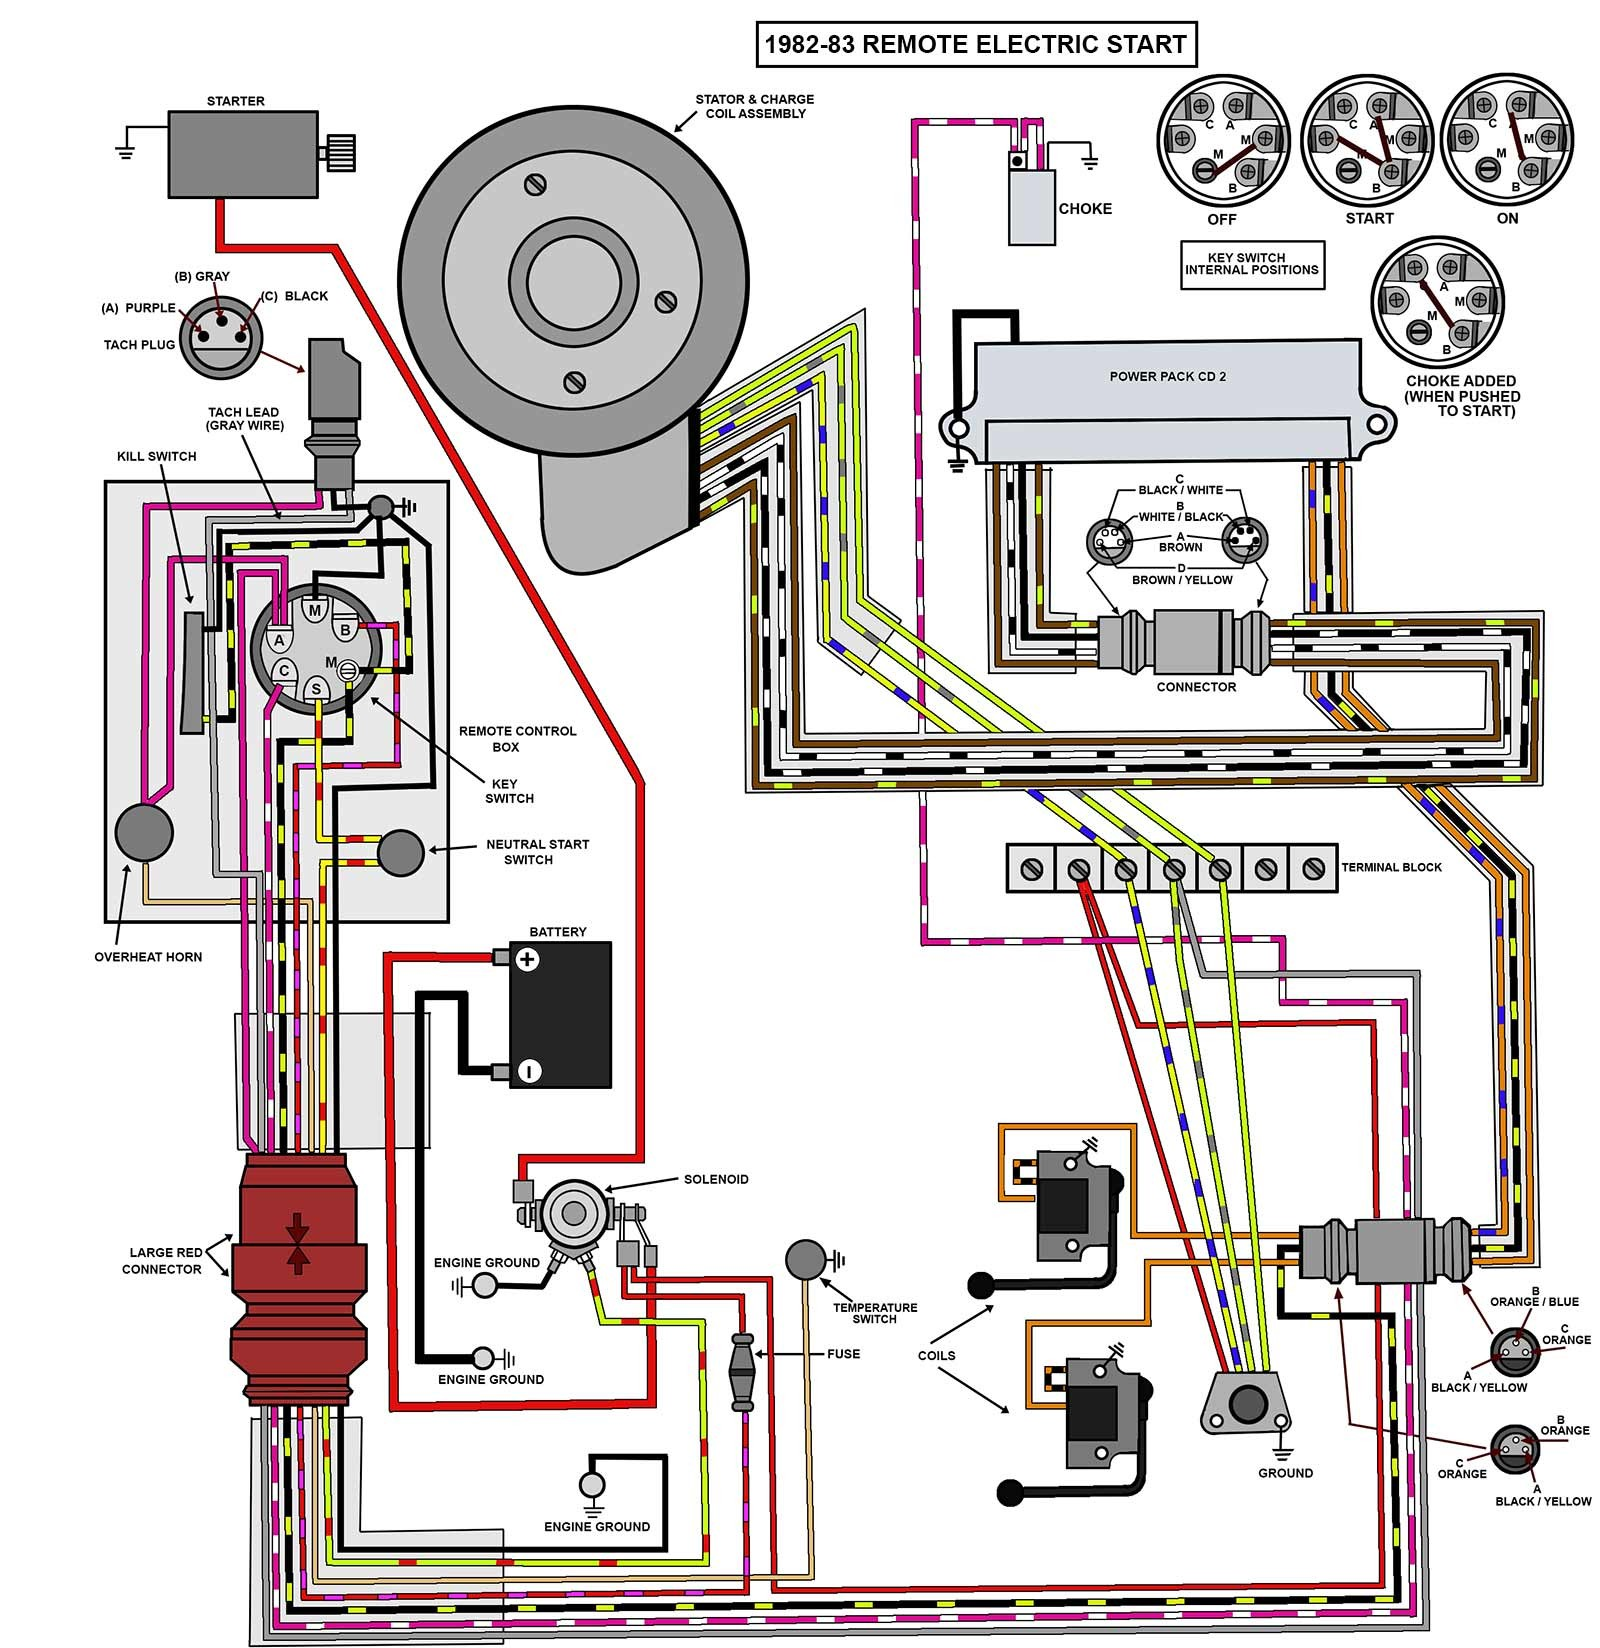 Outboard engine diagram outboard motor engine diagram website cool outboard engine diagram evinrude johnson outboard wiring diagrams mastertech marine of outboard engine diagram outboard motor ccuart Images